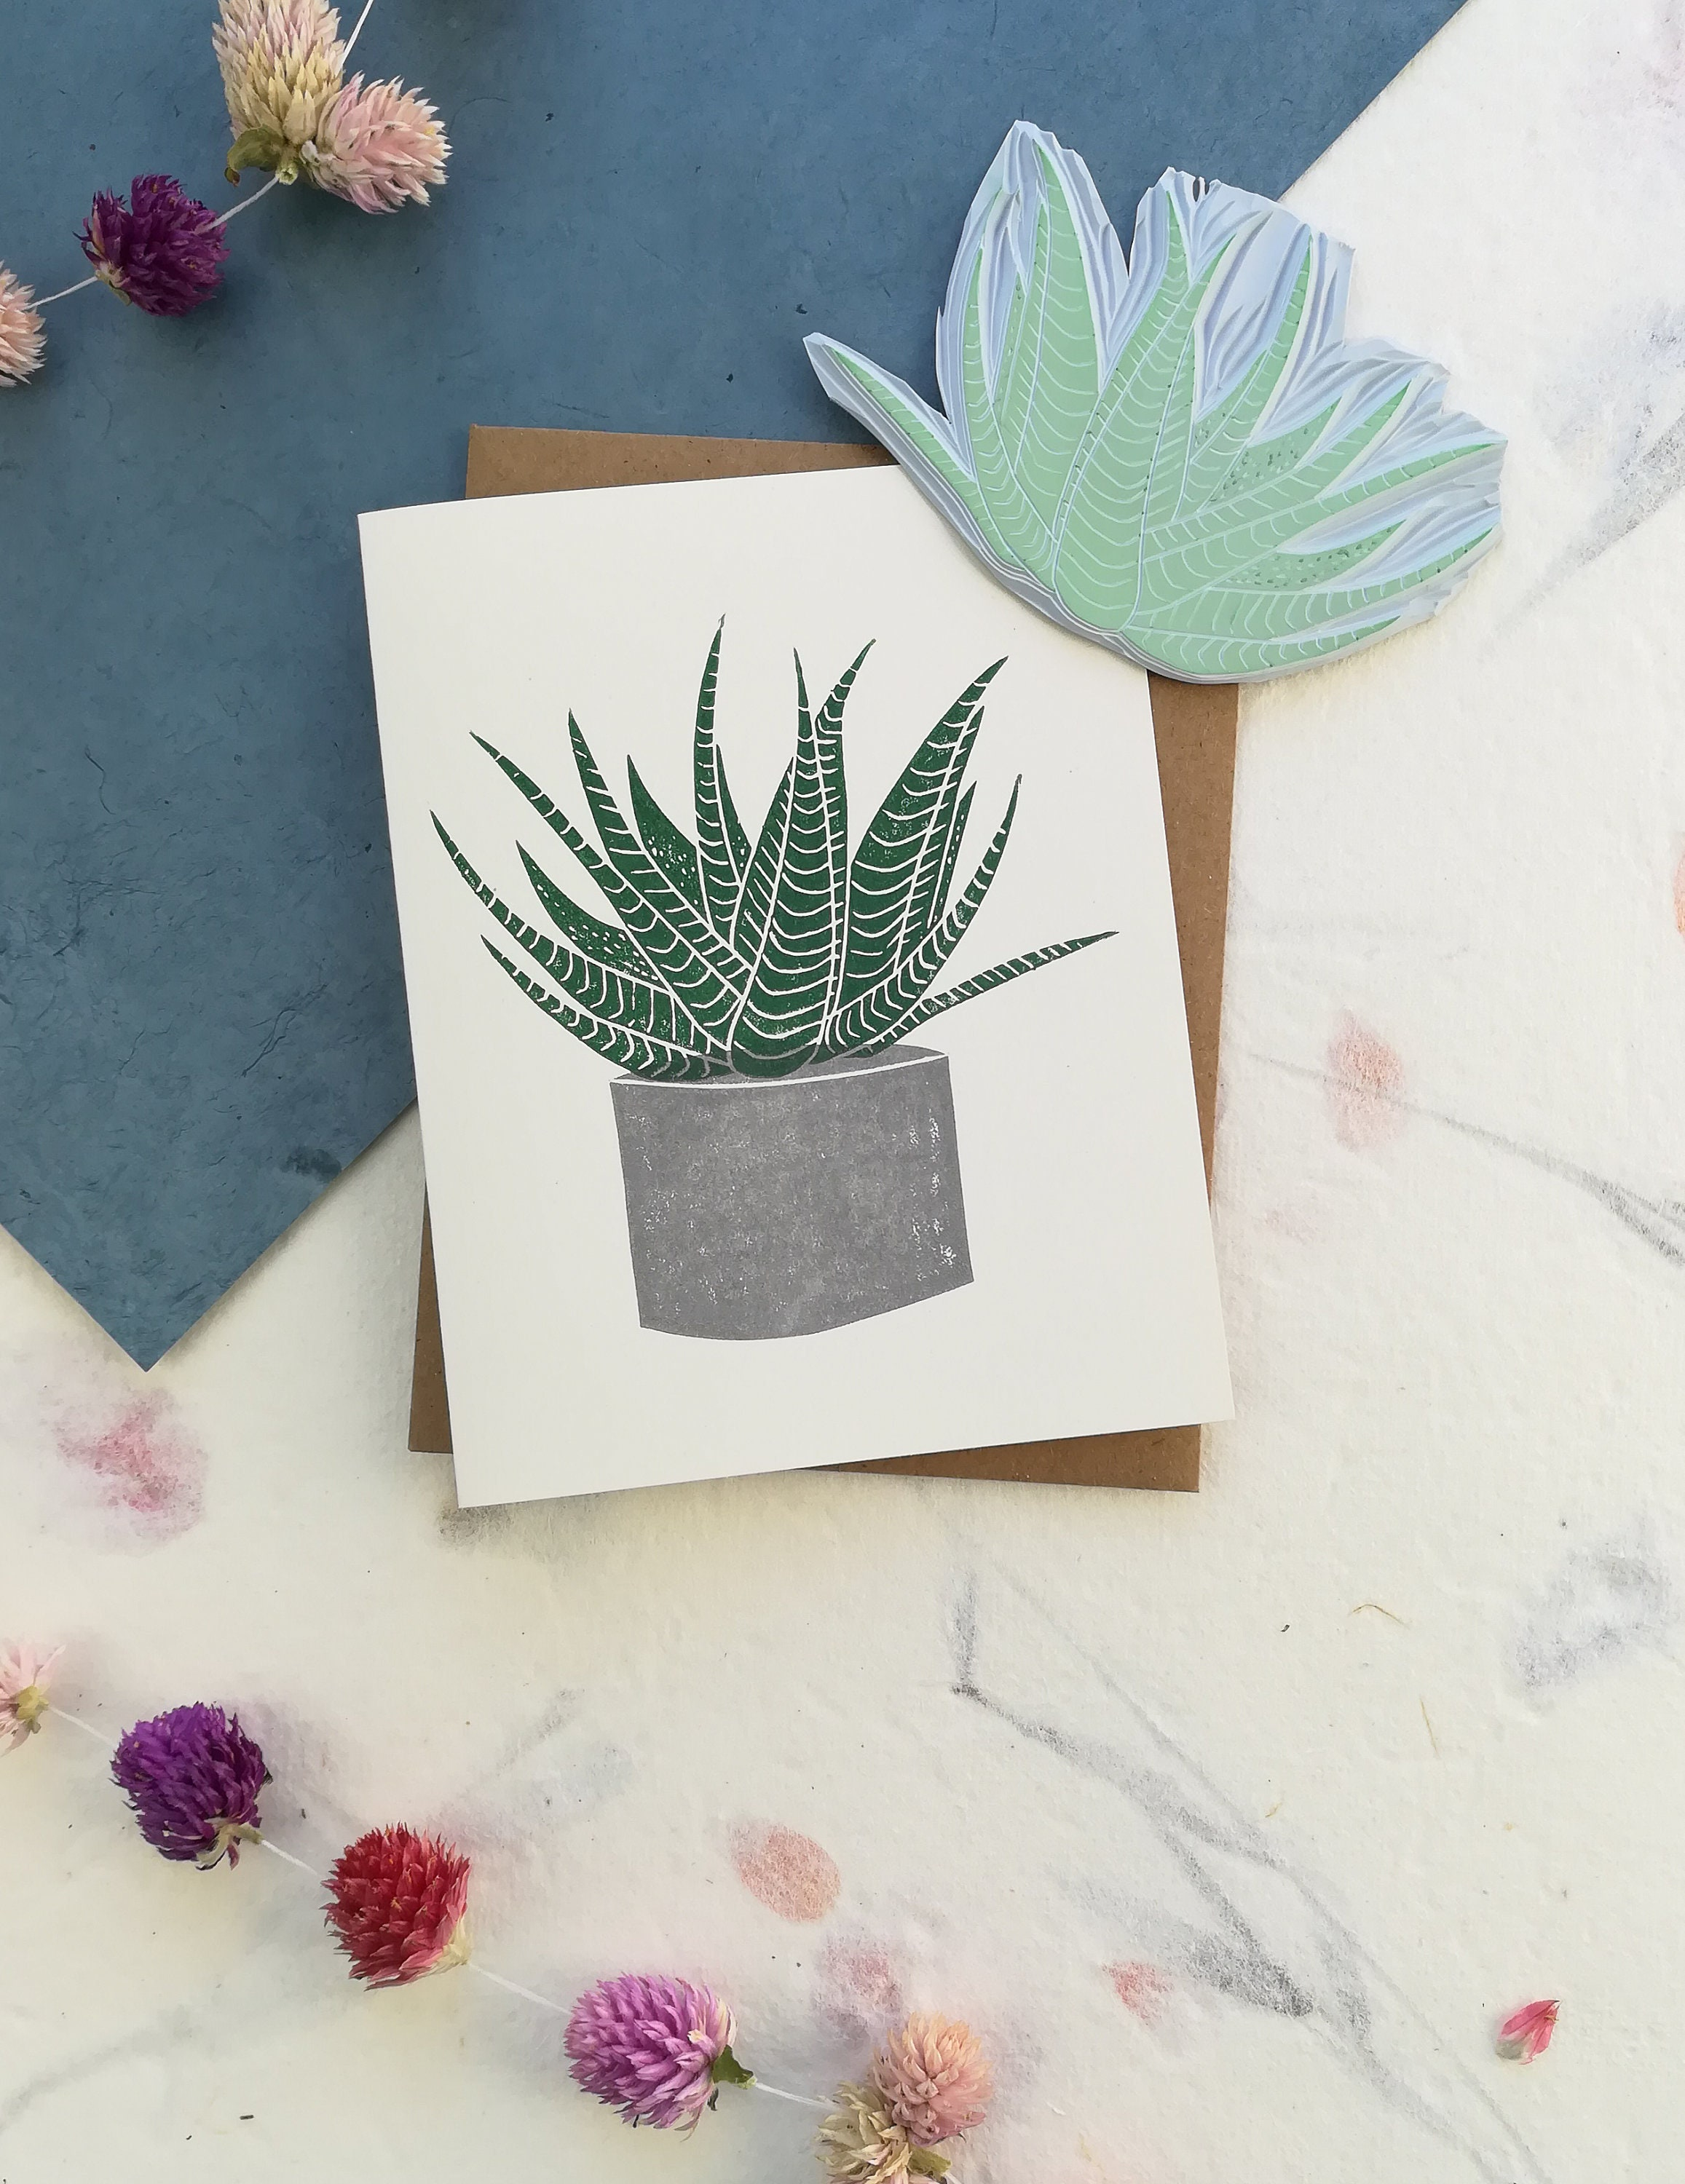 Handprinted card with potted flowers and cactus